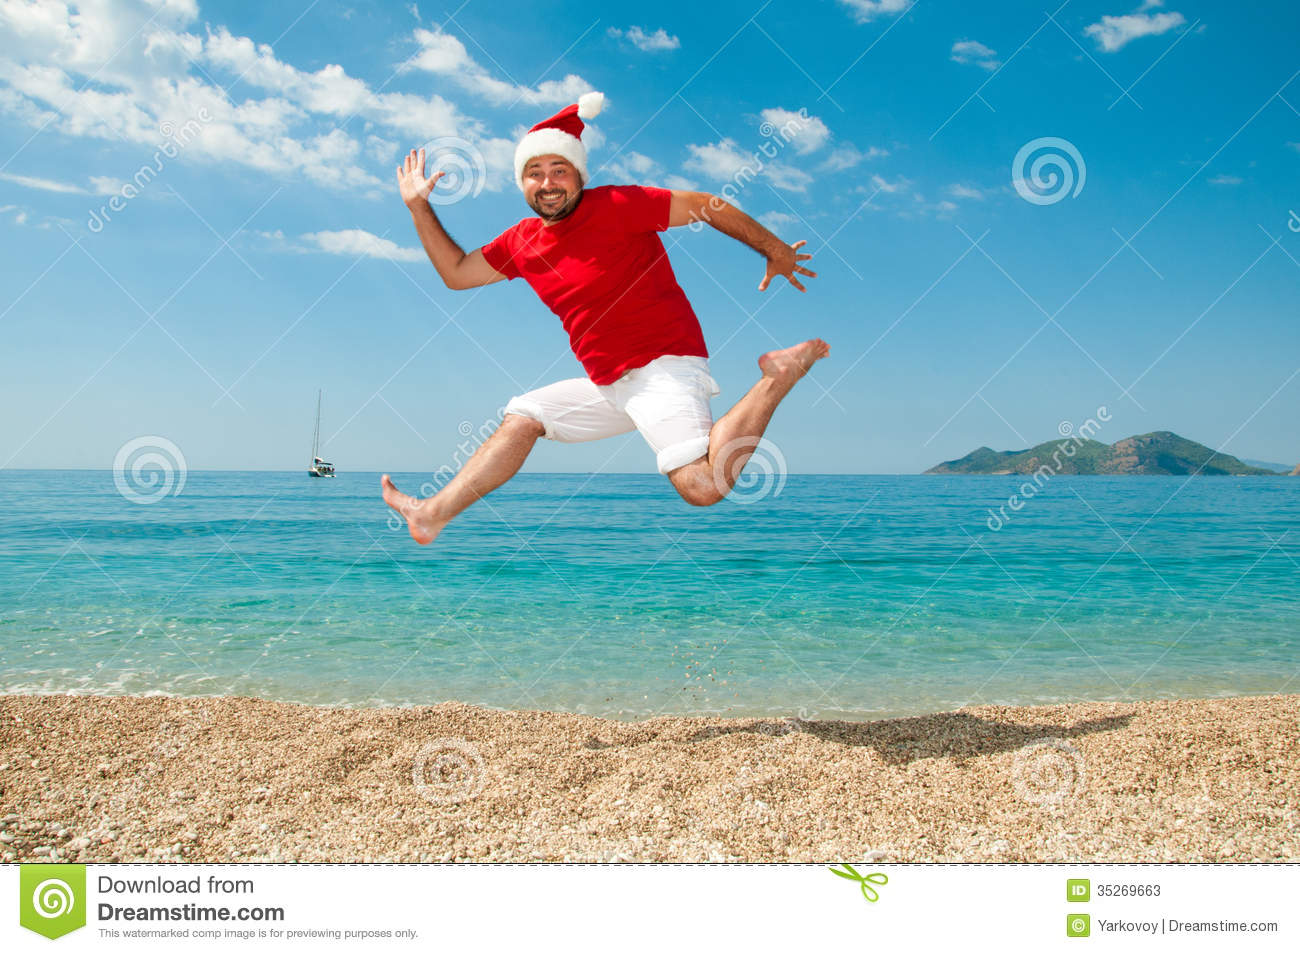 merry christmas and the new year on the beach - Merry Christmas Beach Images